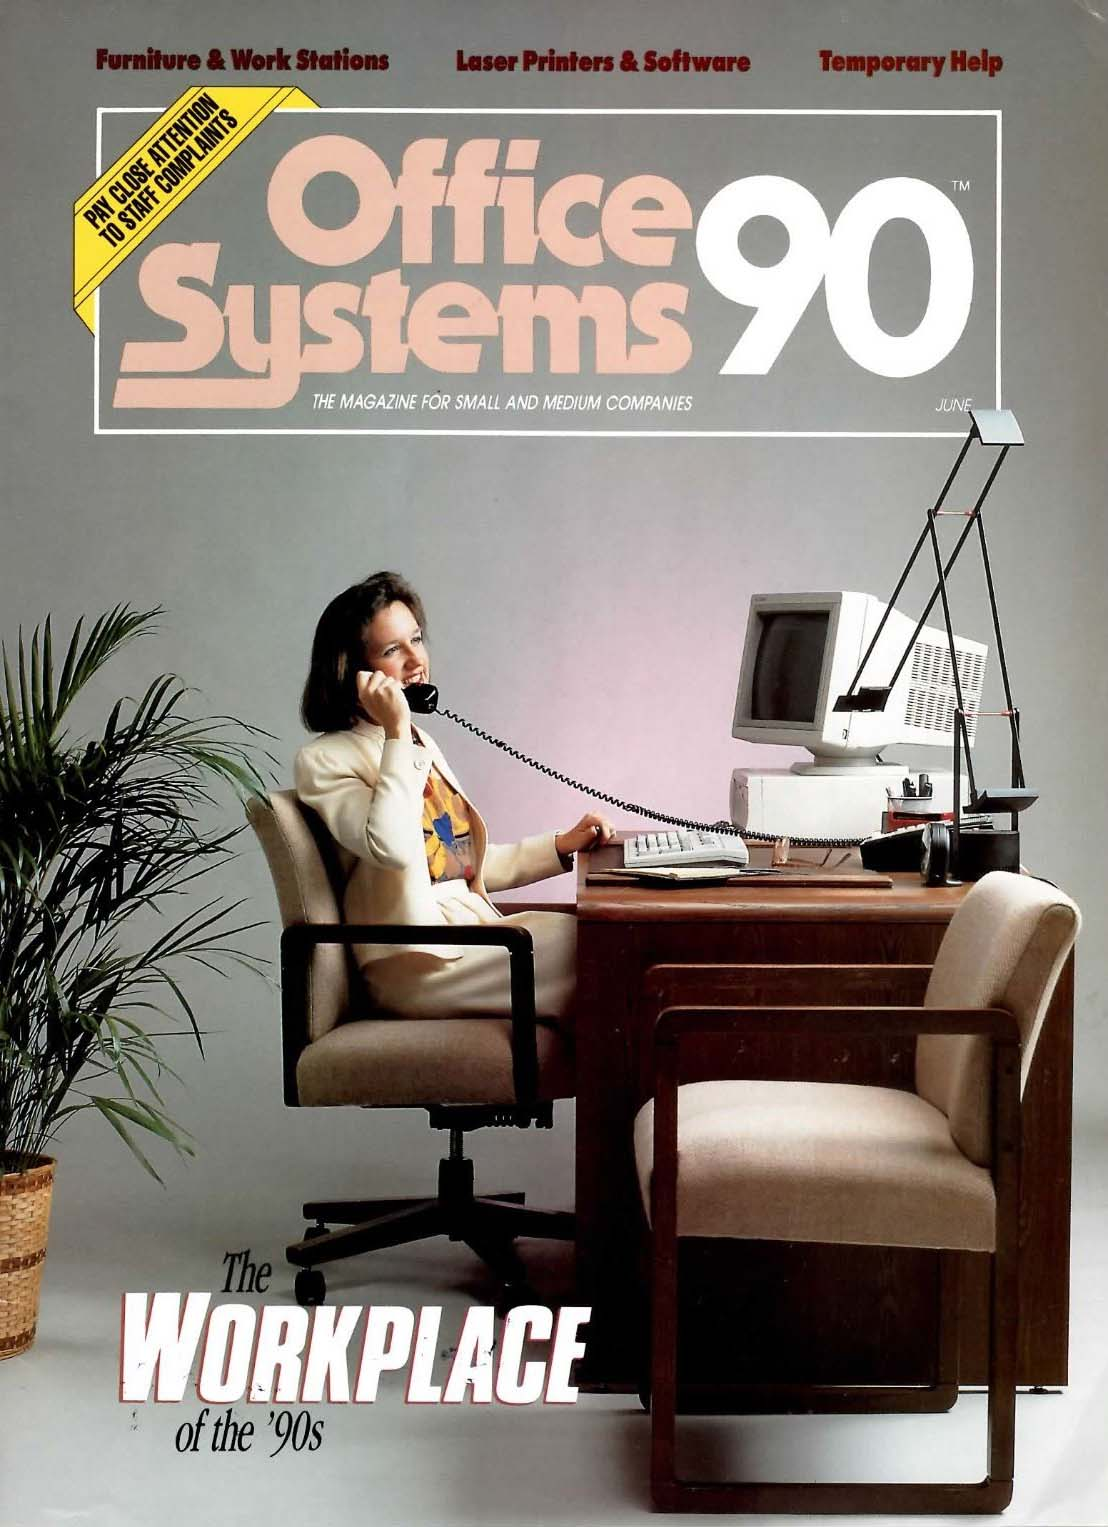 Office systems 1990